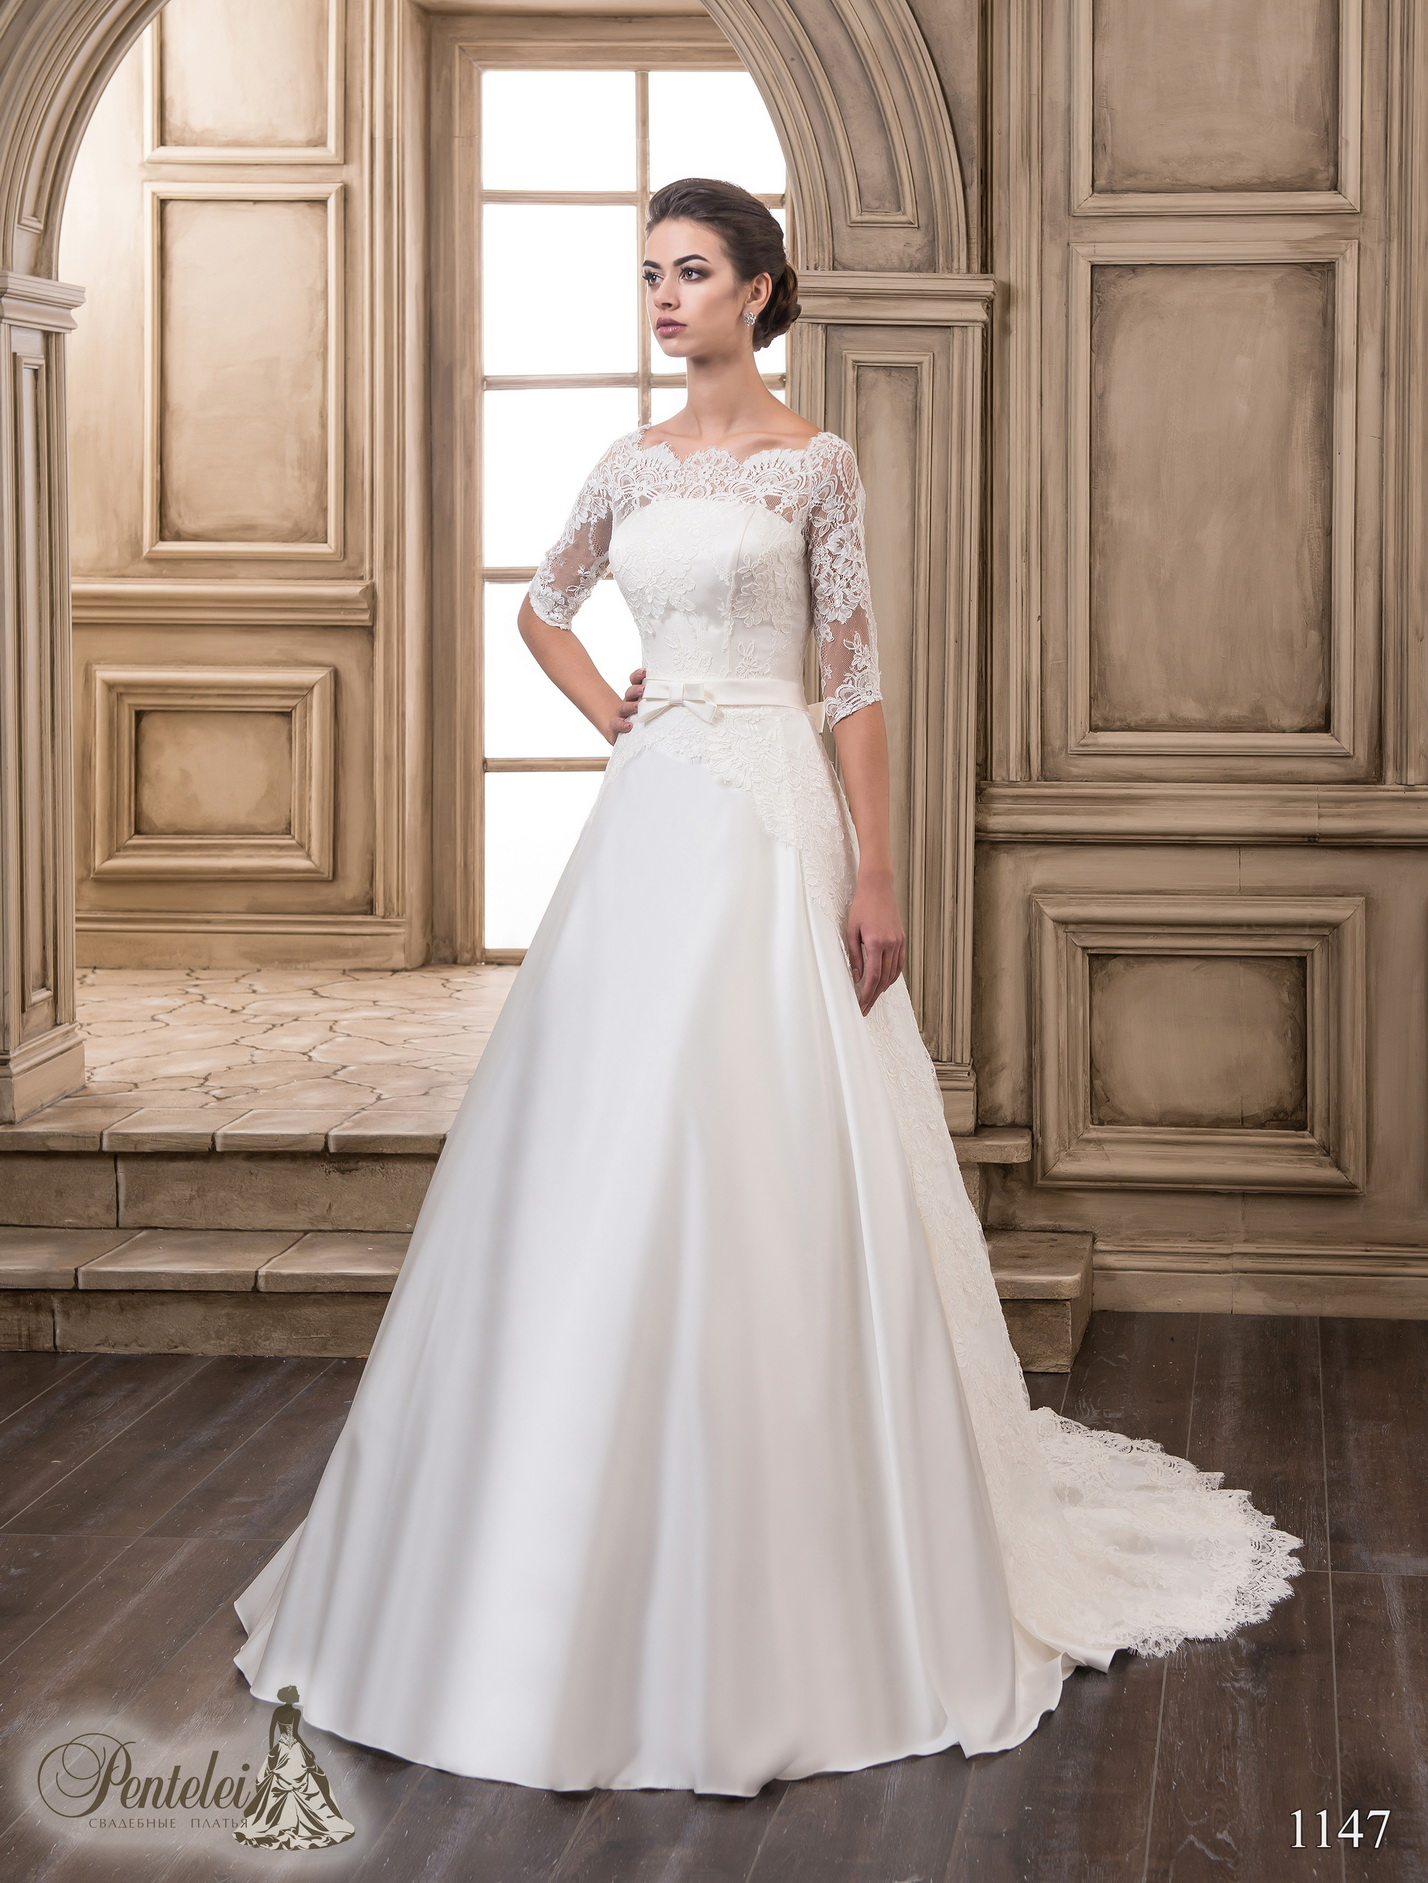 1147 | Buy wedding dresses wholesale from Pentelei